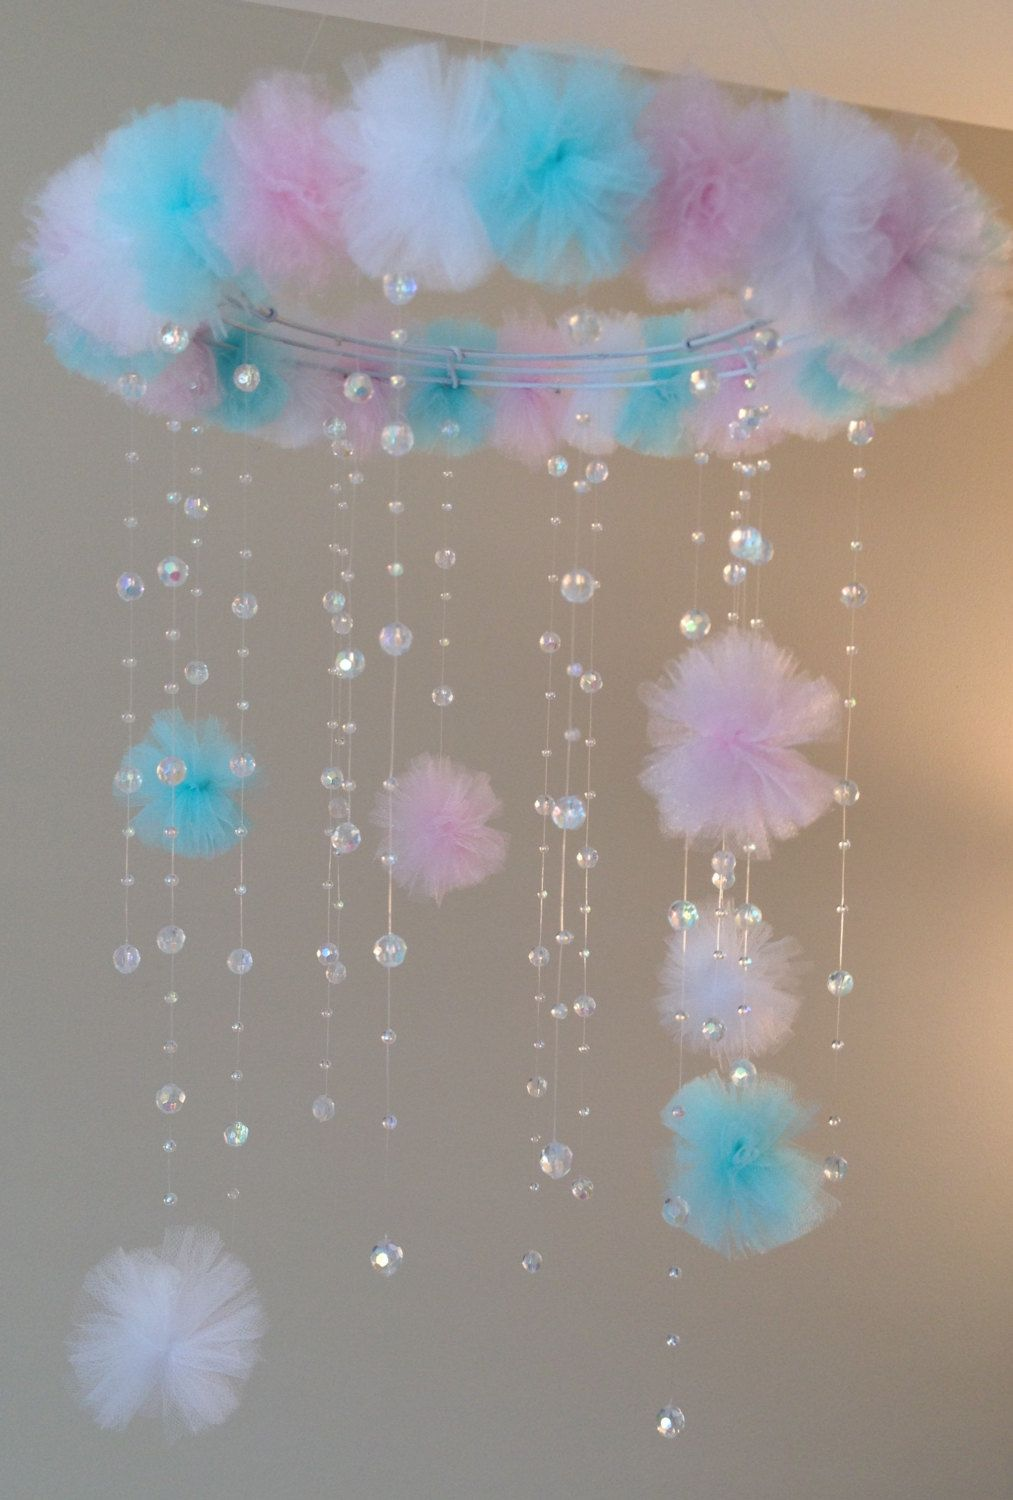 Cristal del beb decoraci n m vil princesa por for Manualidades decoracion bebe